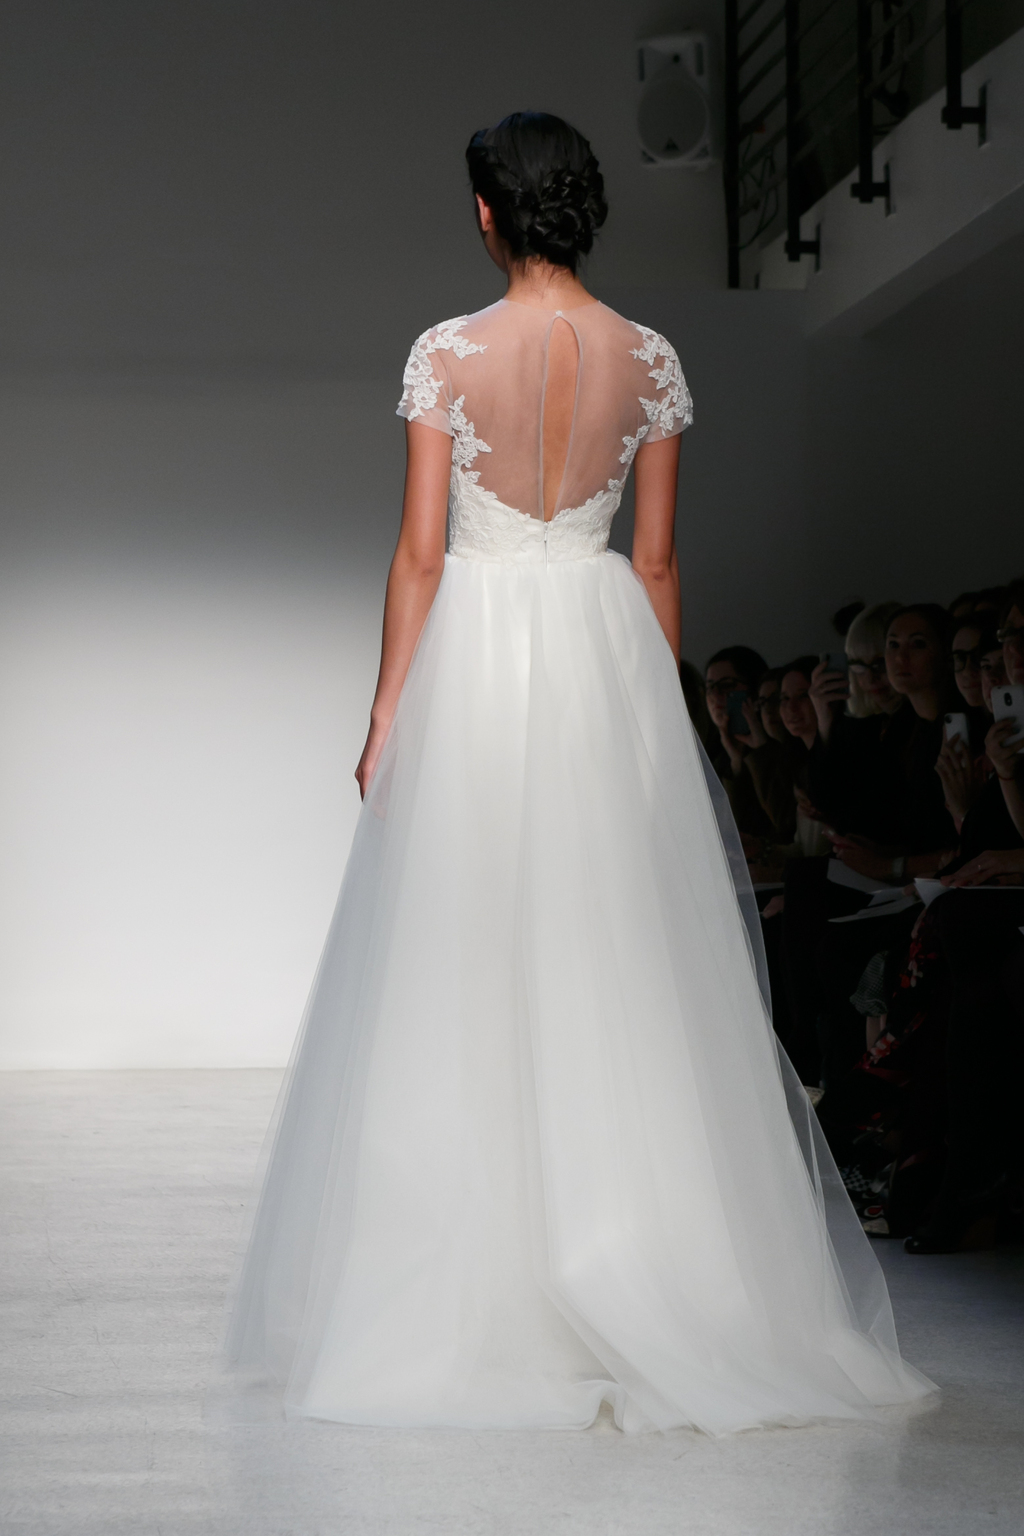 Fall-2013-wedding-dress-by-christos-amsale-bridal-1b.full